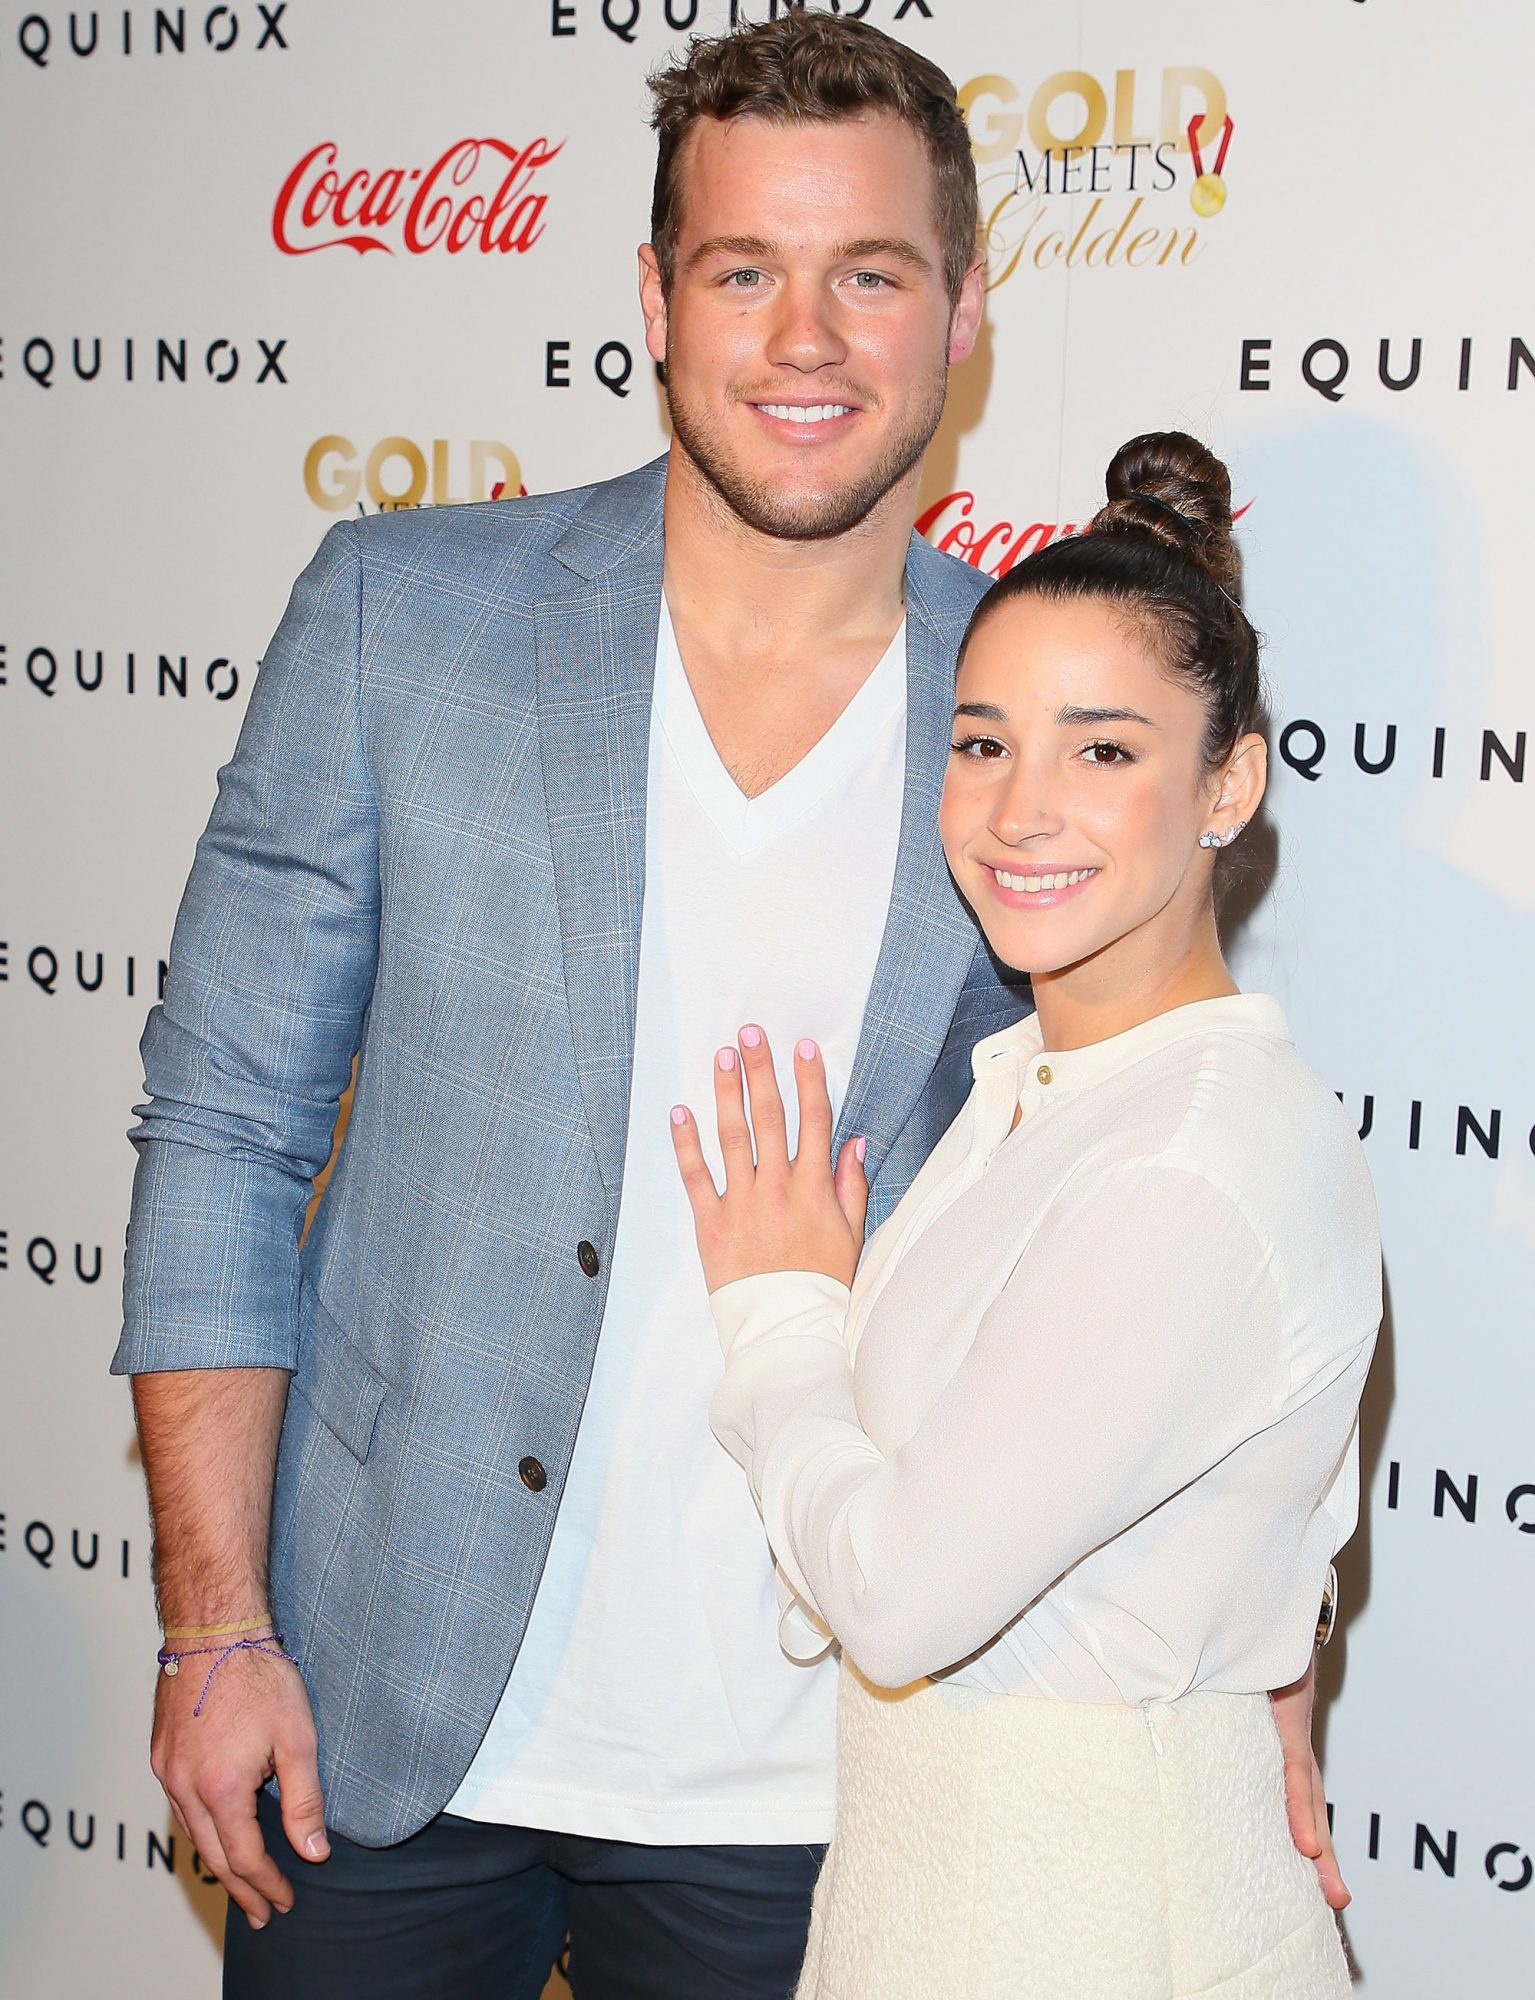 LOS ANGELES, CA - JANUARY 07: Colton Underwood and Aly Raisman attend the Gold Meets Golden event on January 7, 2017 in Los Angeles, California. (Photo by JB Lacroix/WireImage)